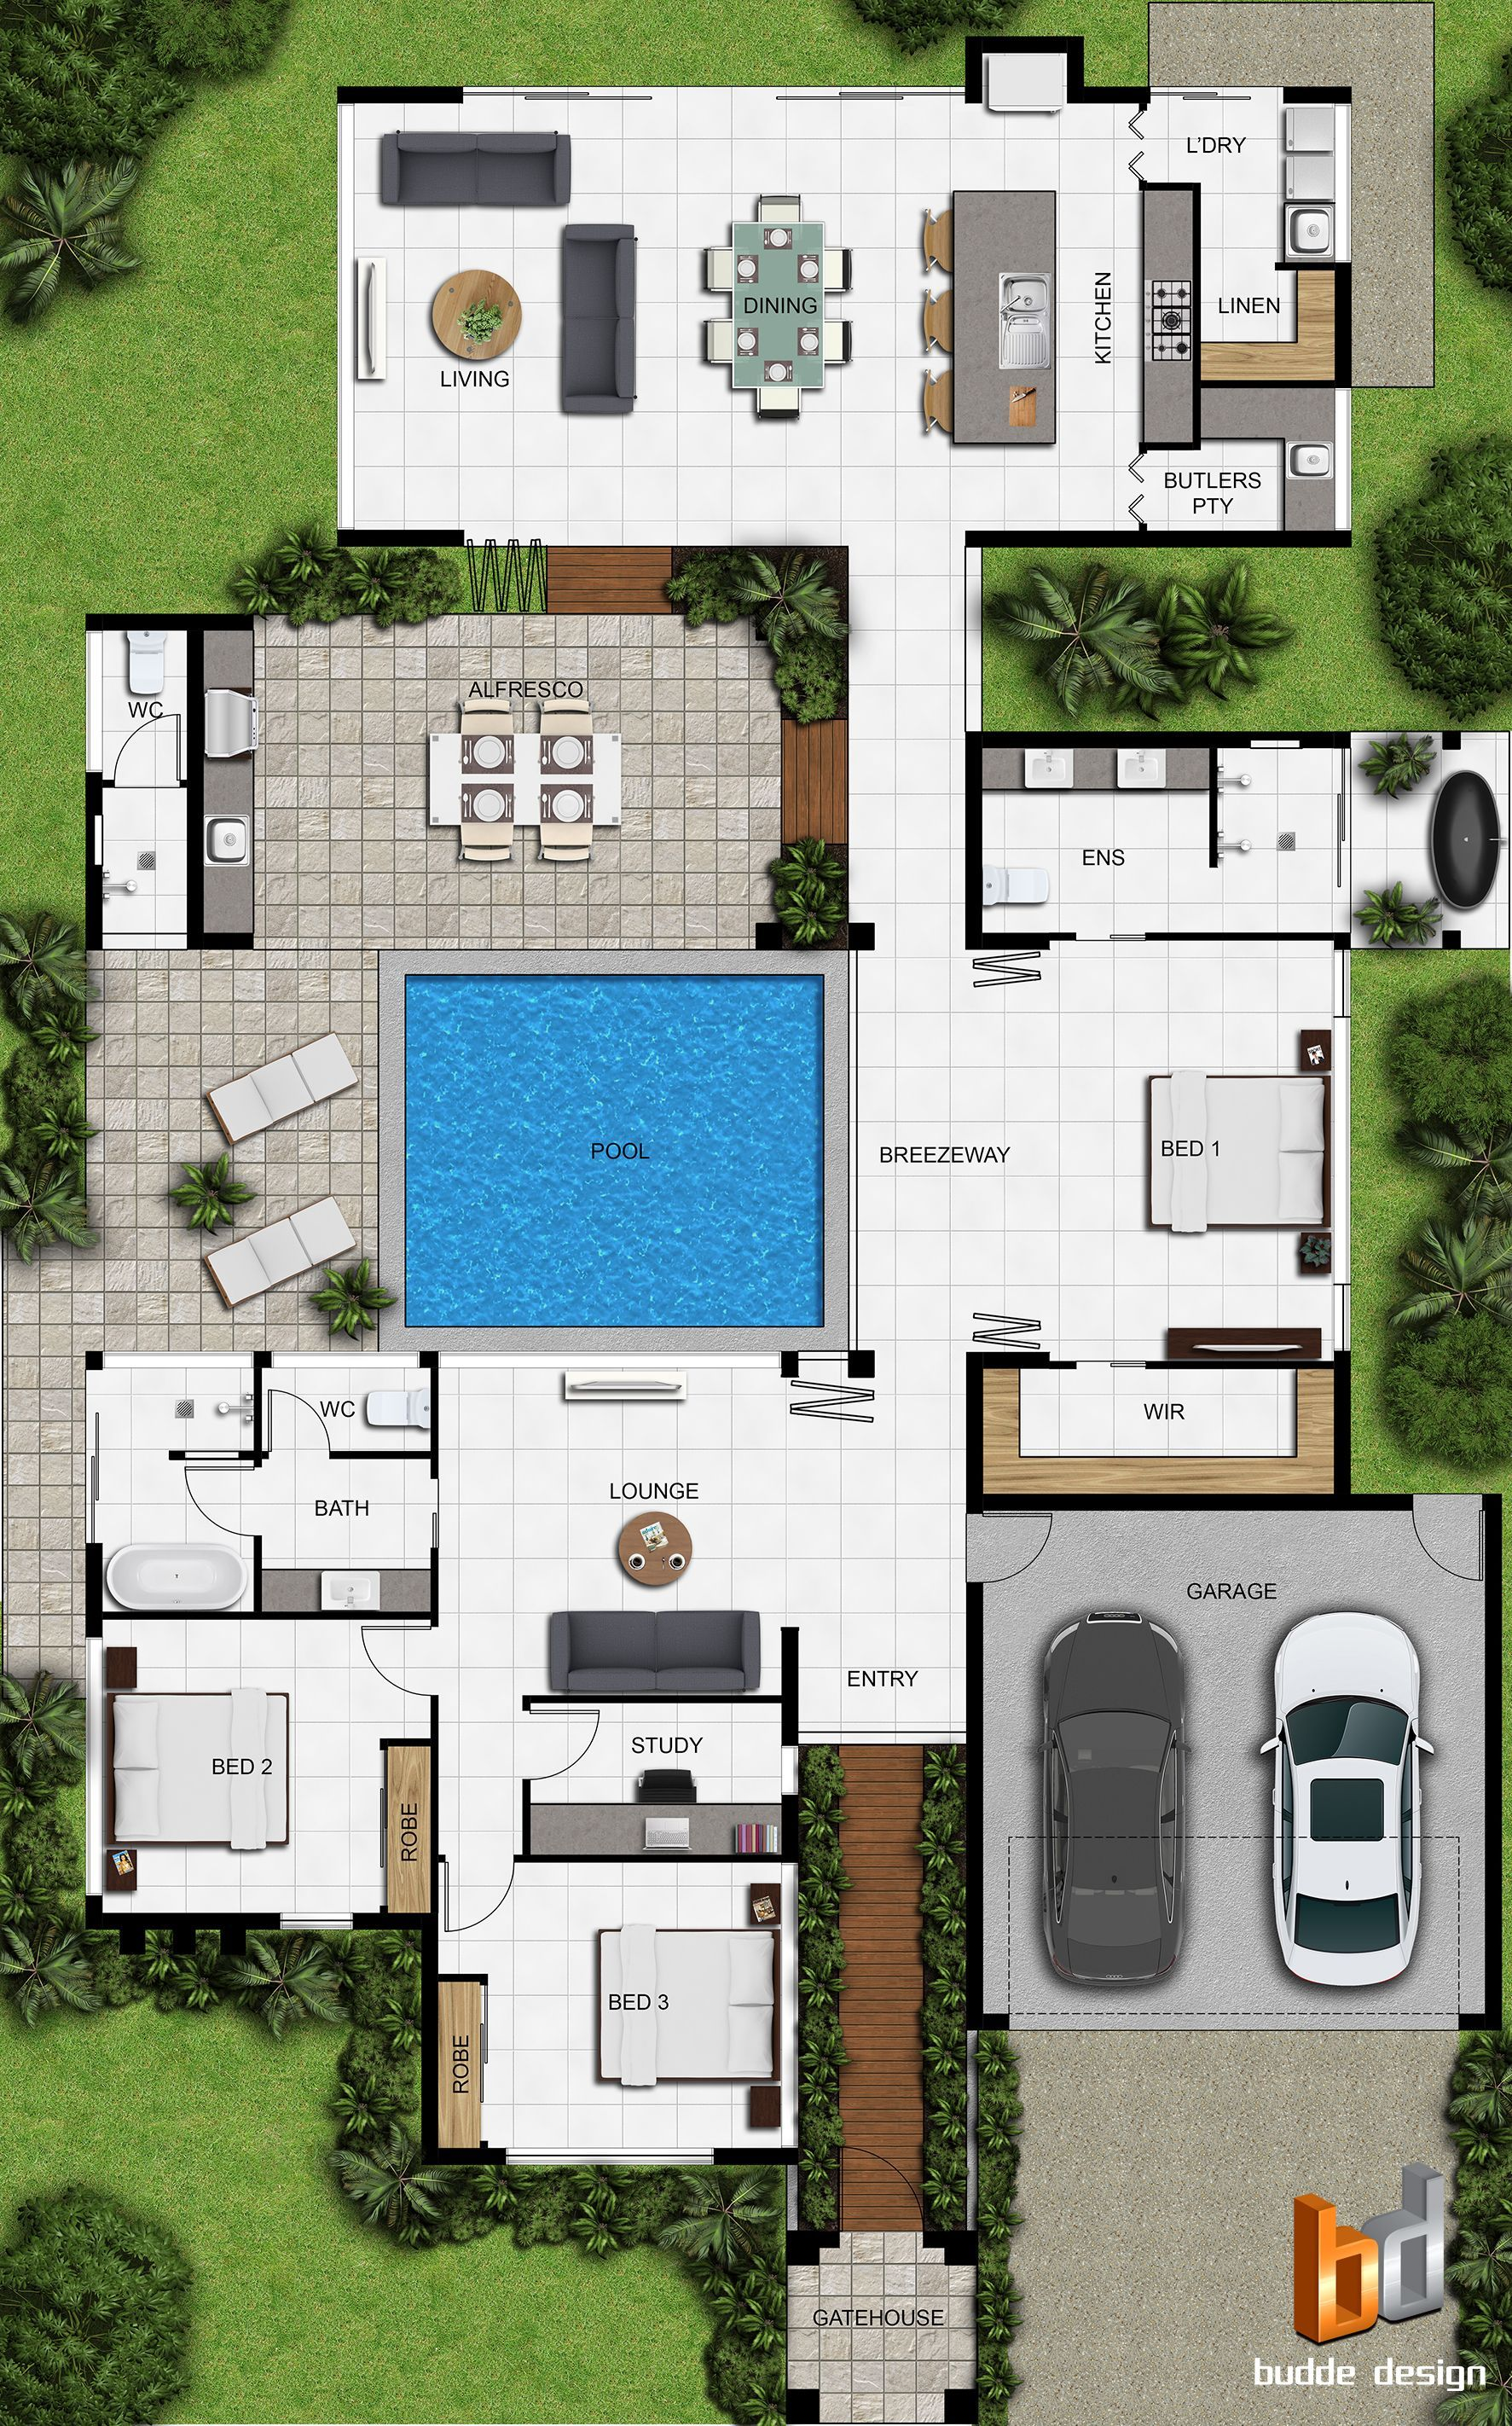 2d Colour Floor Plan And 2d Colour Site Plan Image Used For Realestate Marketing Victoria House Construction Plan Pool House Plans Courtyard House Plans